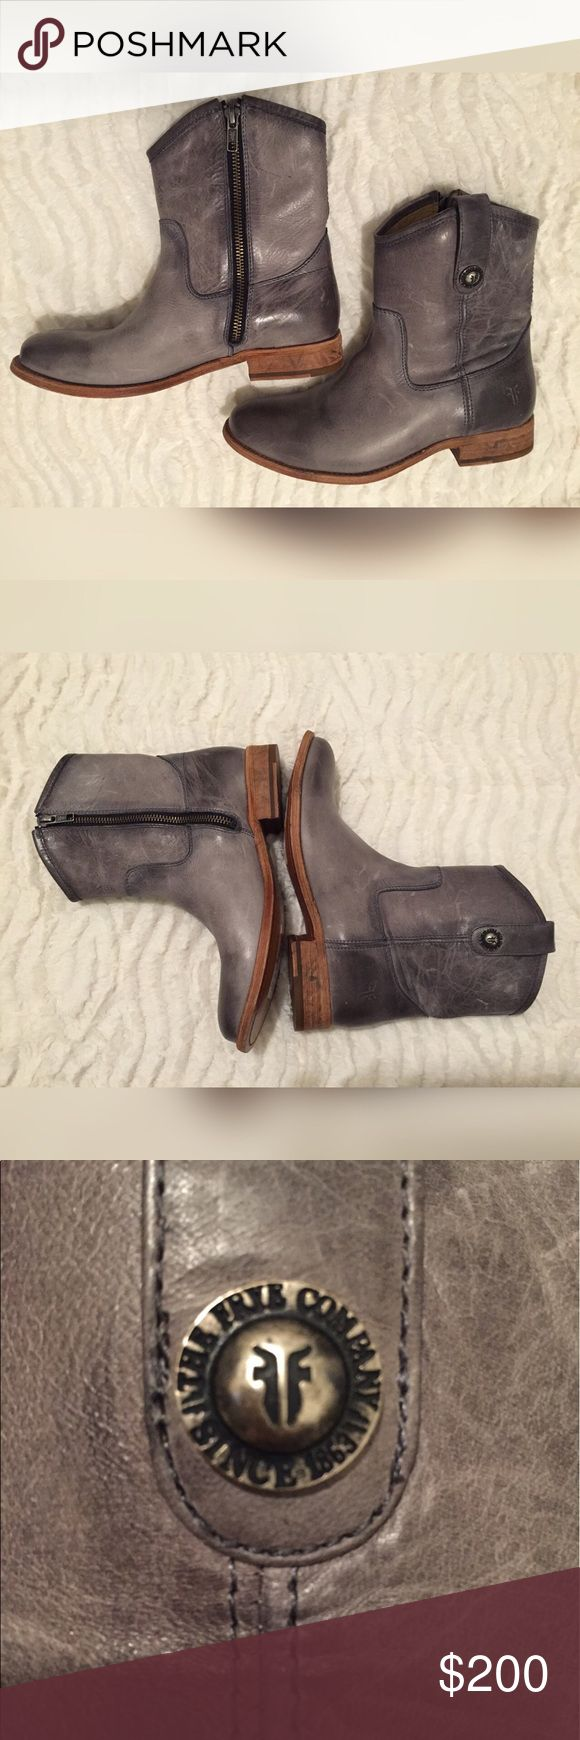 Frye Melissa Button Short Boots in Ice Leather Boots with 1 Inch Heels Frye Shoes